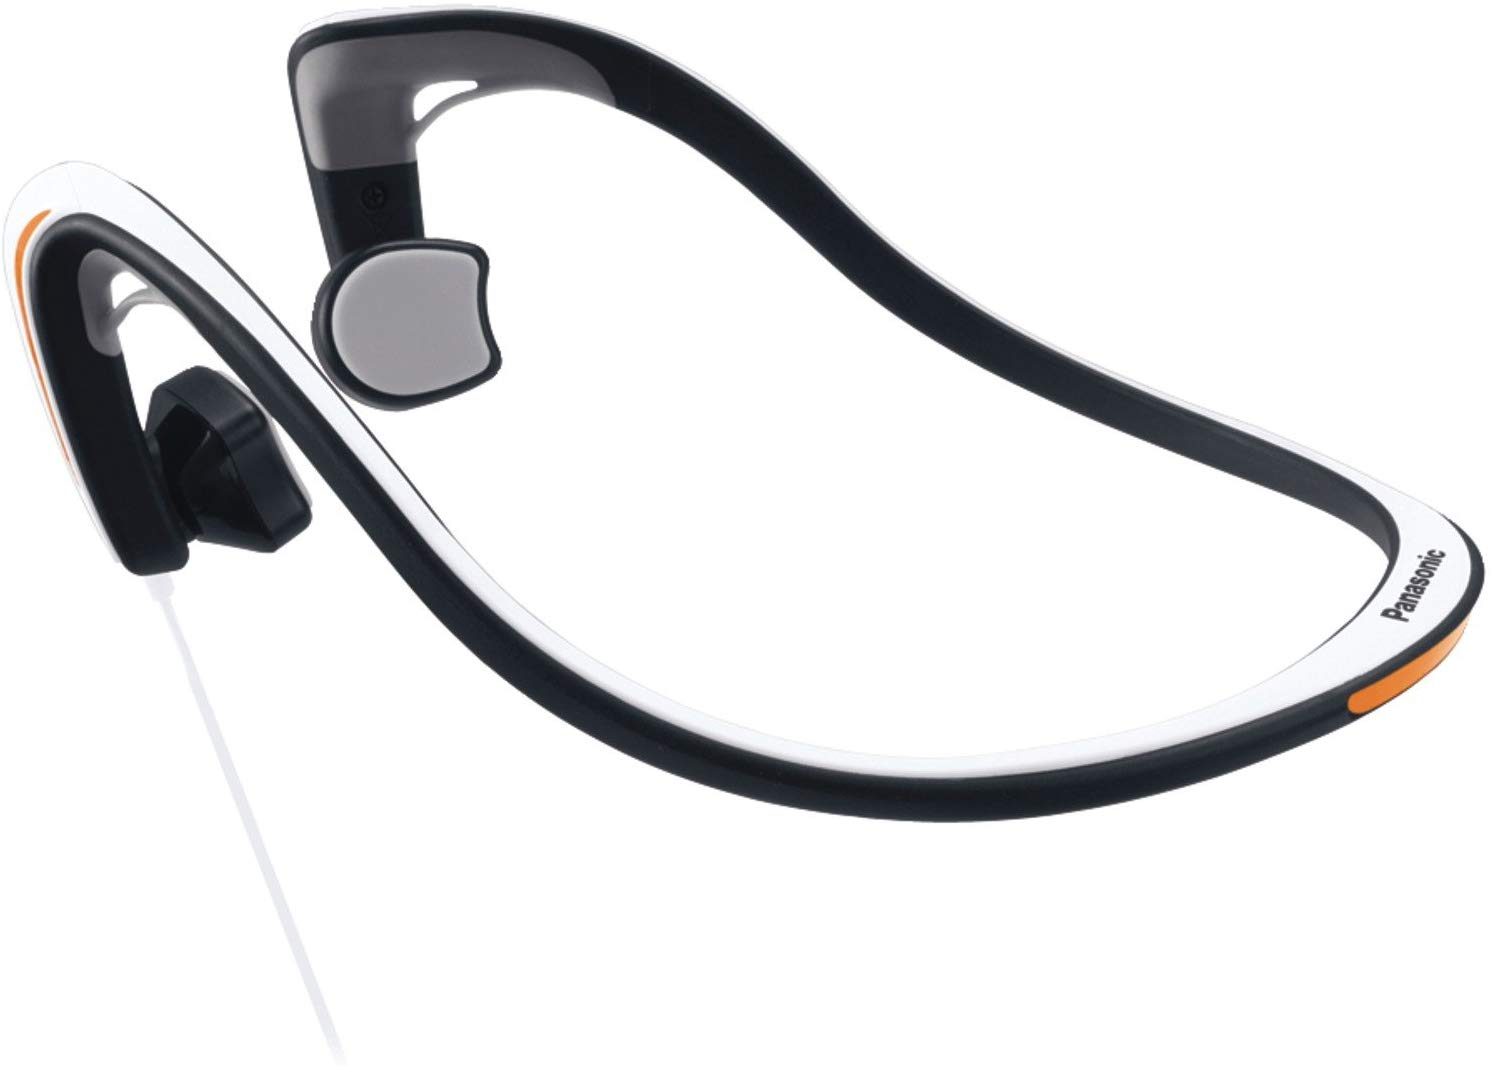 Panasonic RP-HGS10-W Open-Ear Bone Conduction Headphones with Reflective Design, White